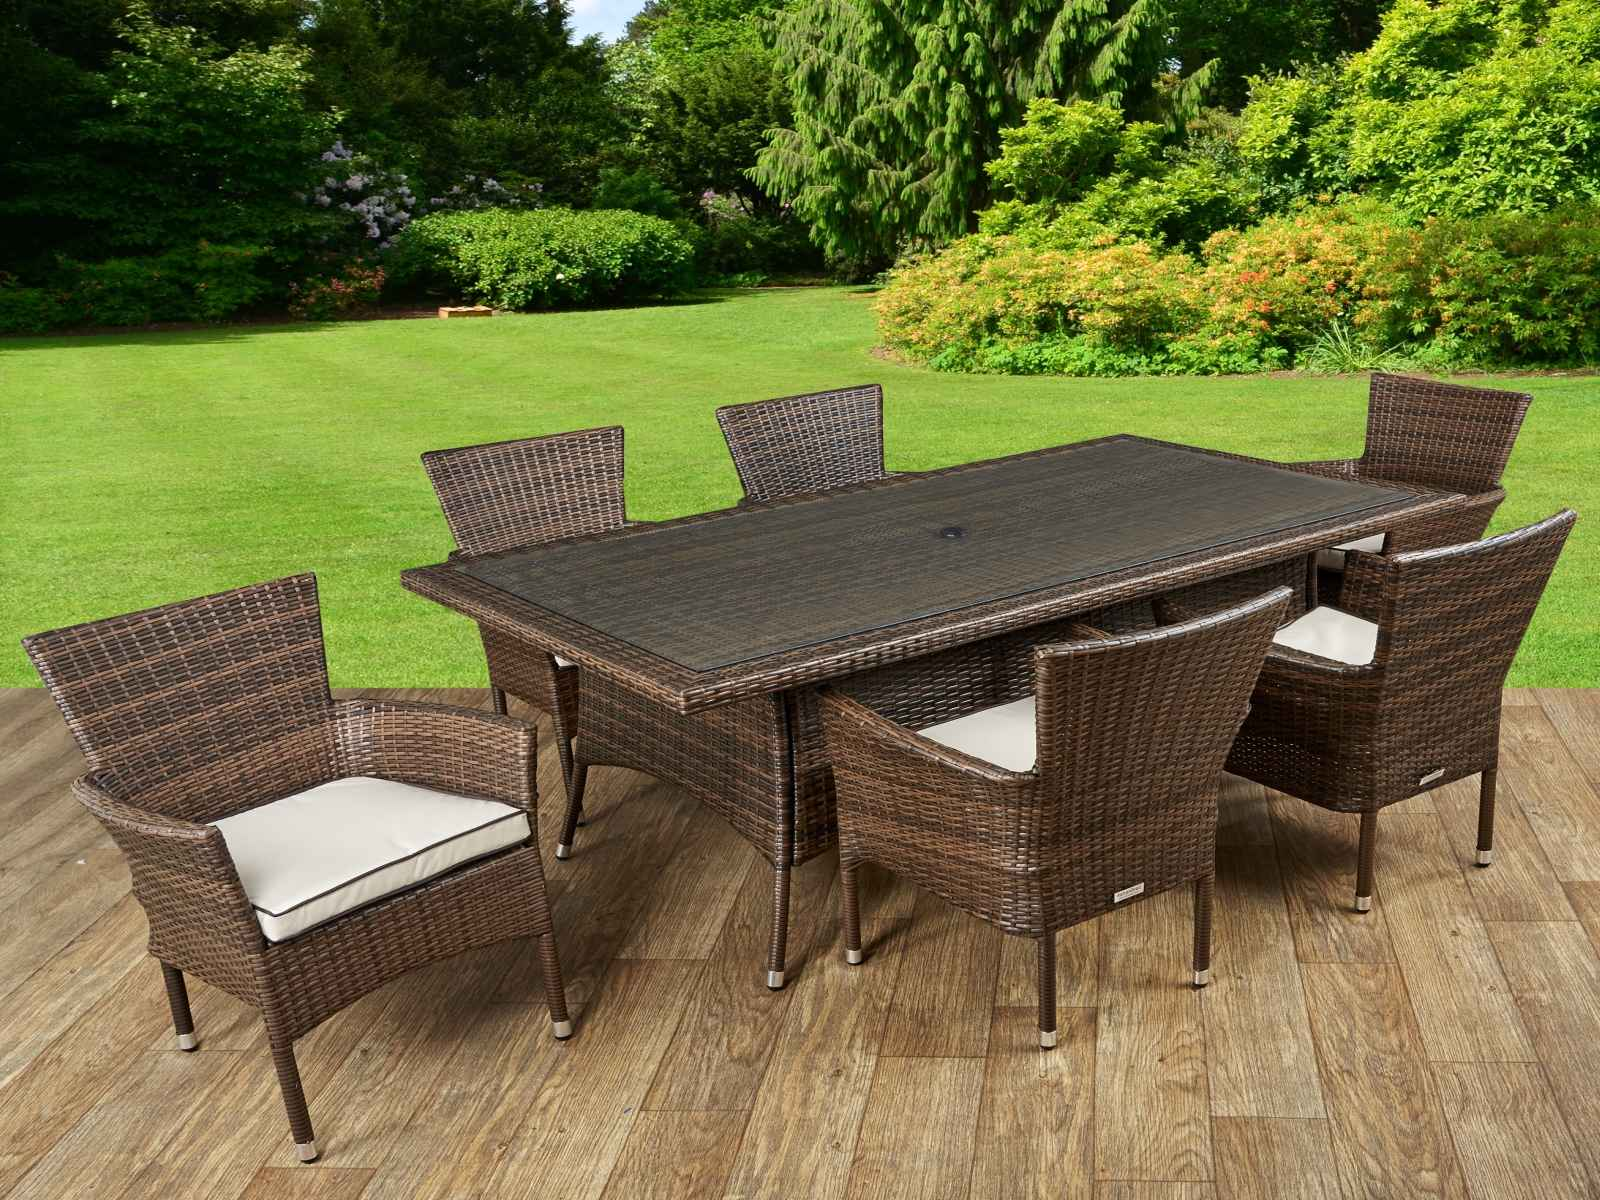 Merveilleux Cambridge 6 Rattan Garden Chairs And Rectangular Table Set In Chocolate And  Cream